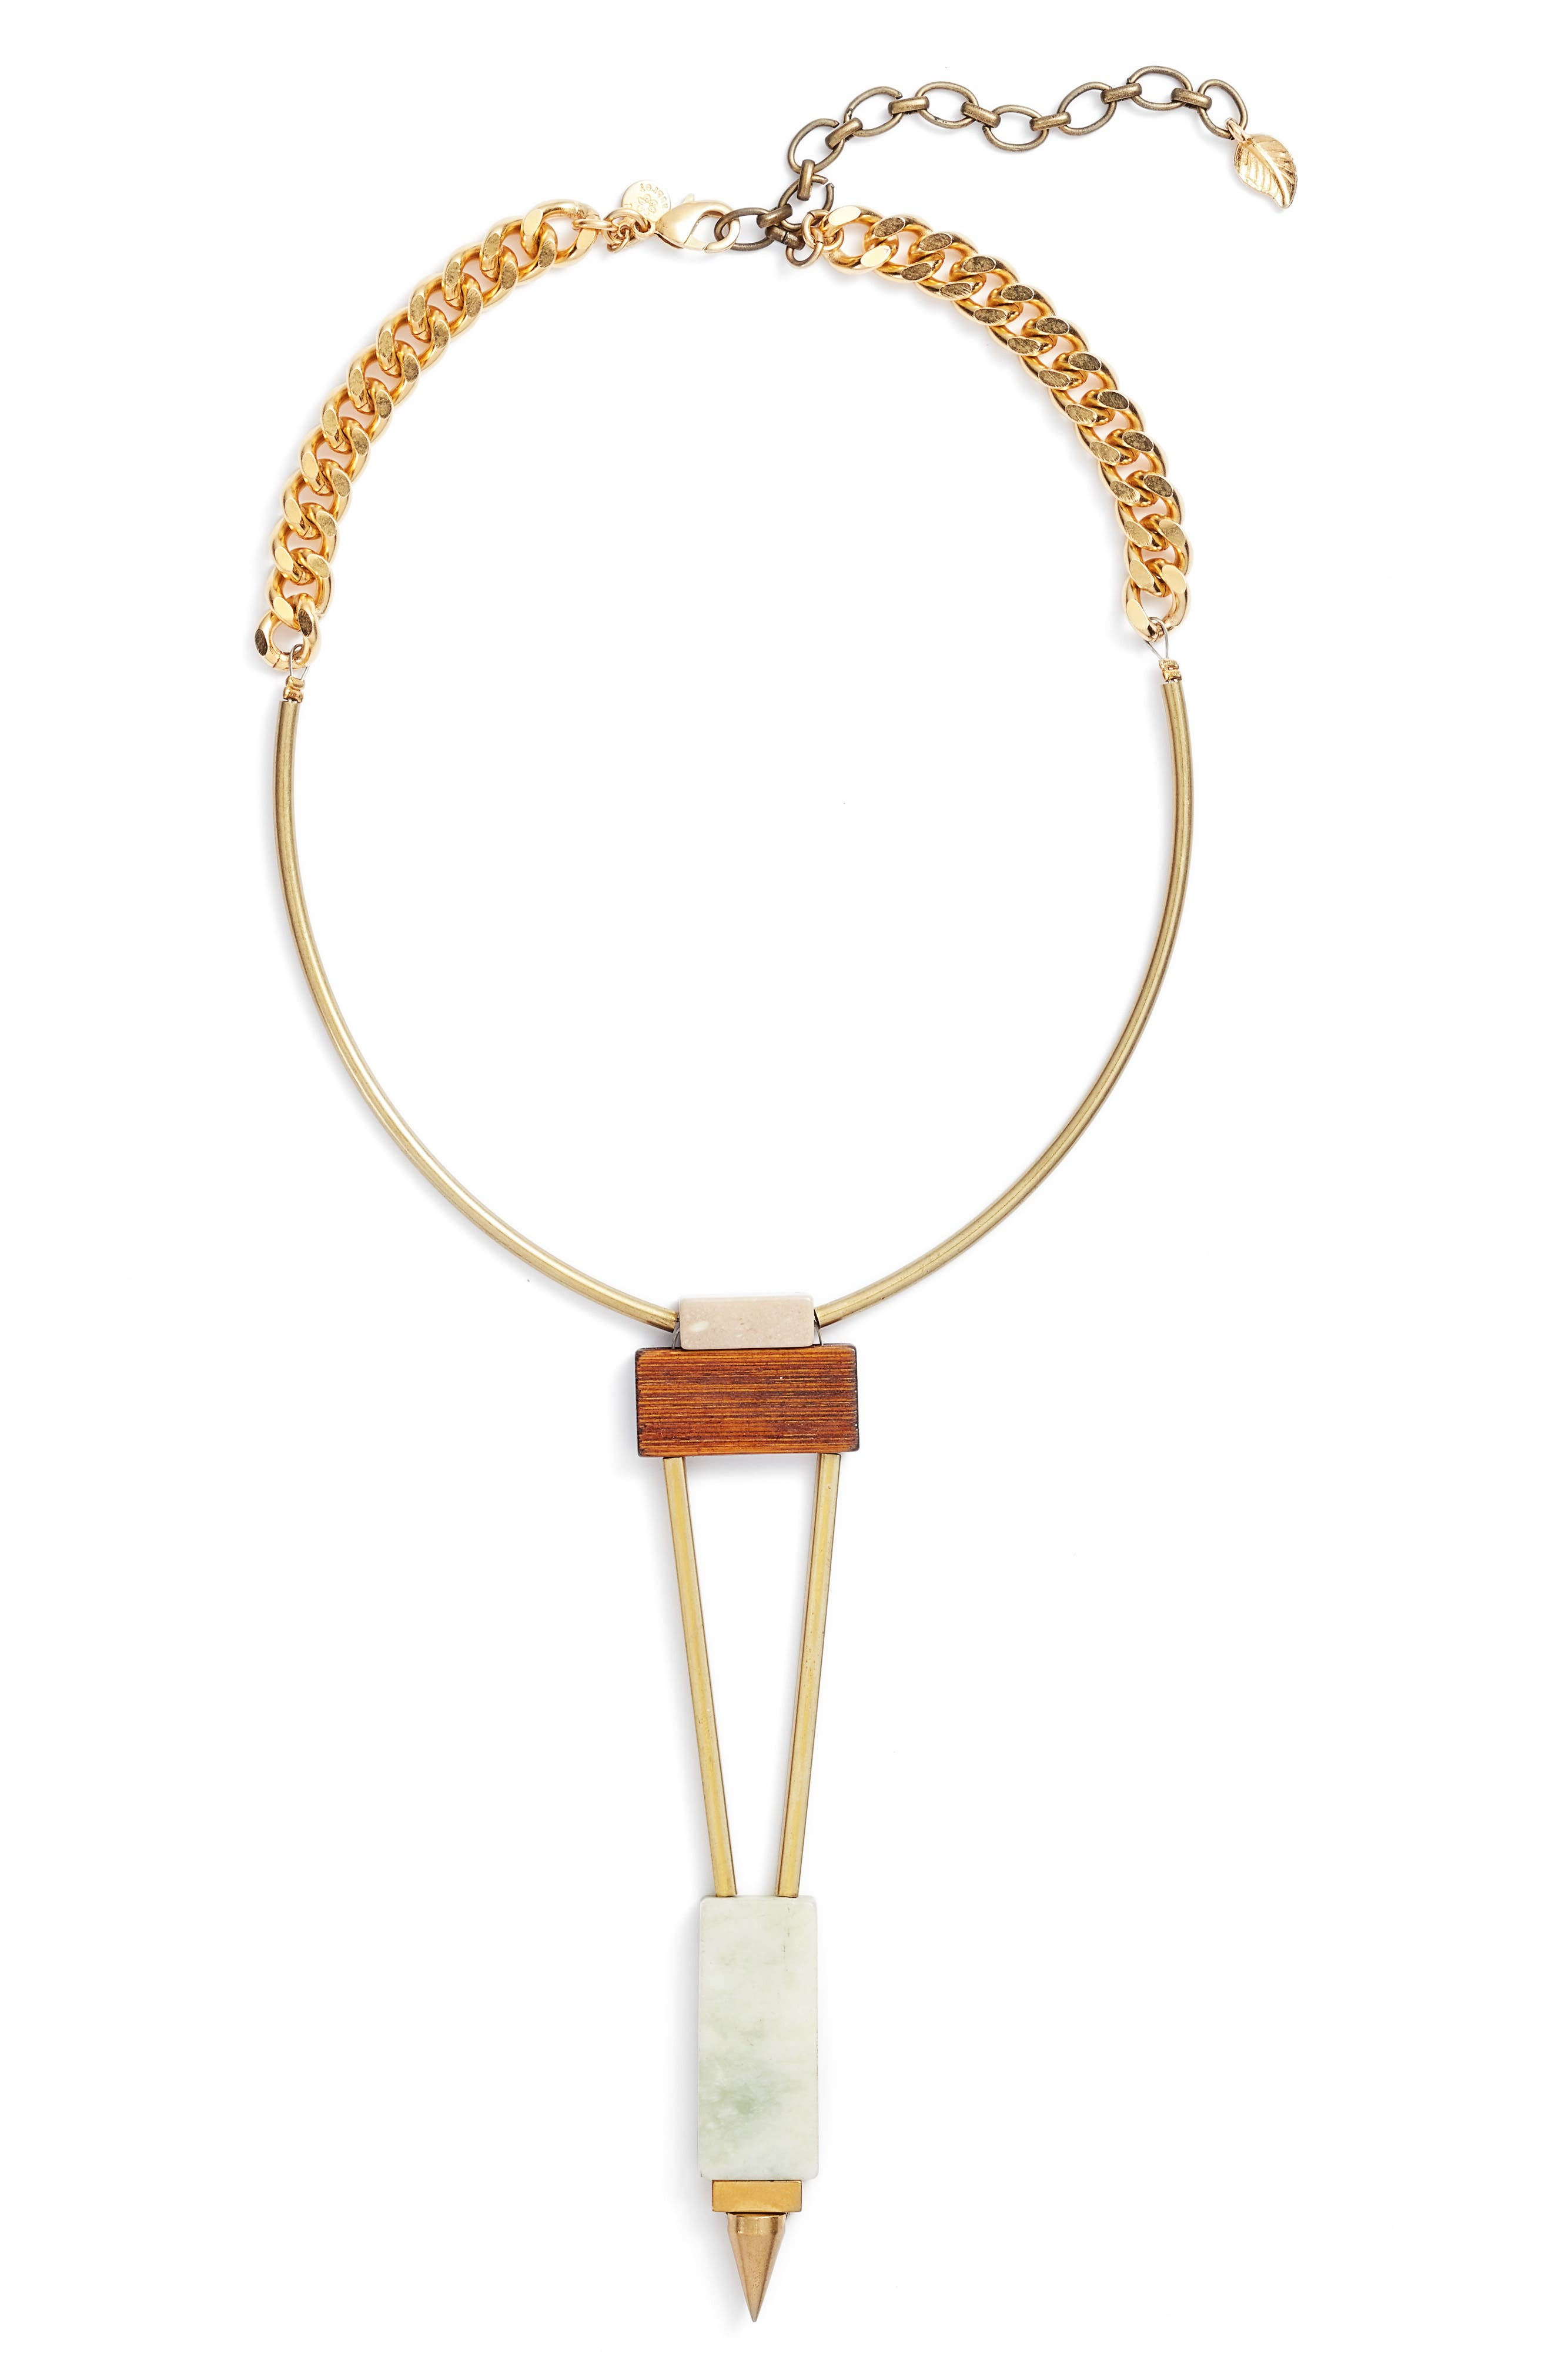 Odele Wood Statement Necklace,                             Main thumbnail 1, color,                             Green/ Gold